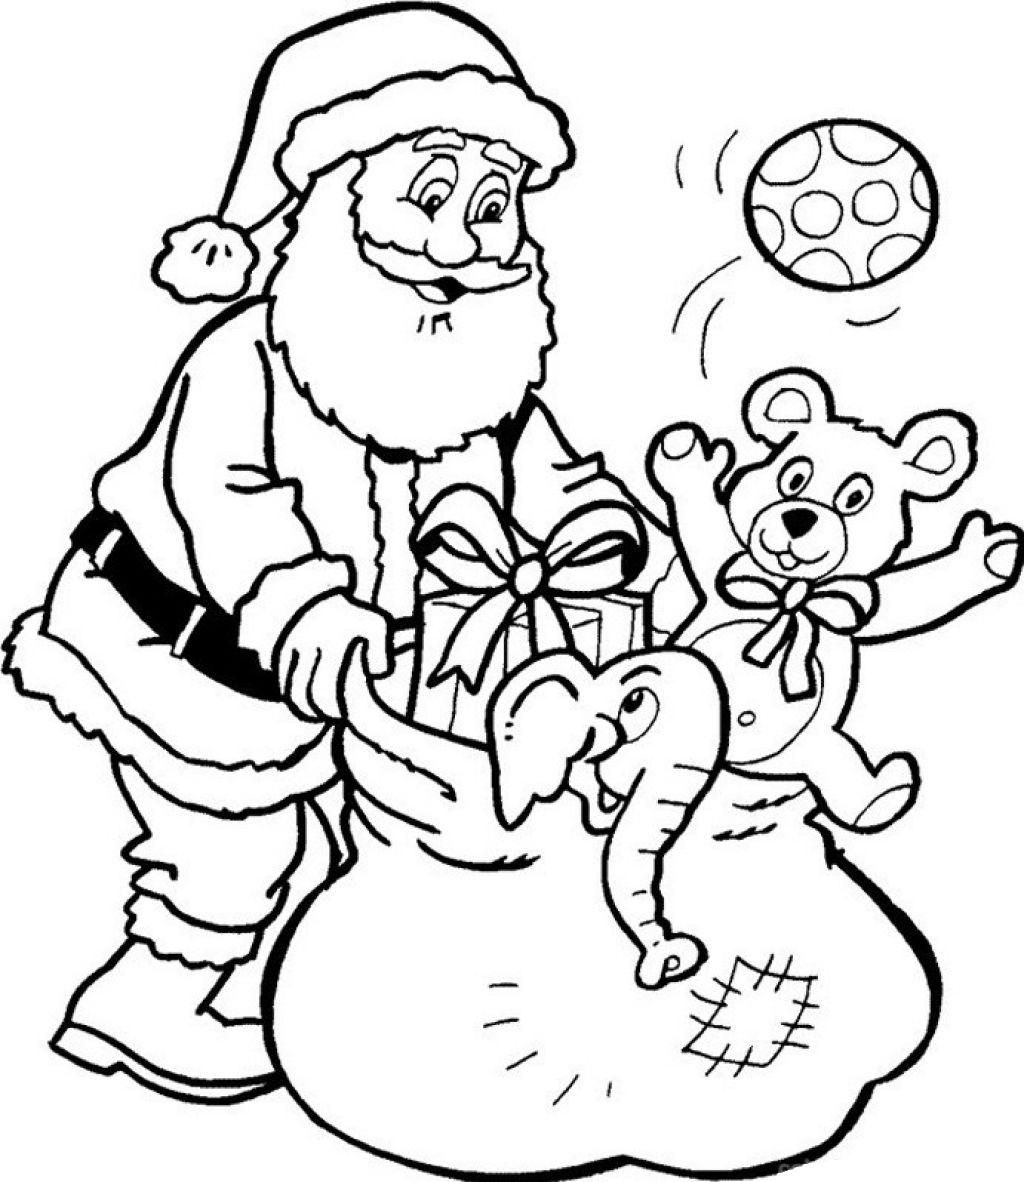 Printable Santa Claus Coloring Page Printable Santa Claus